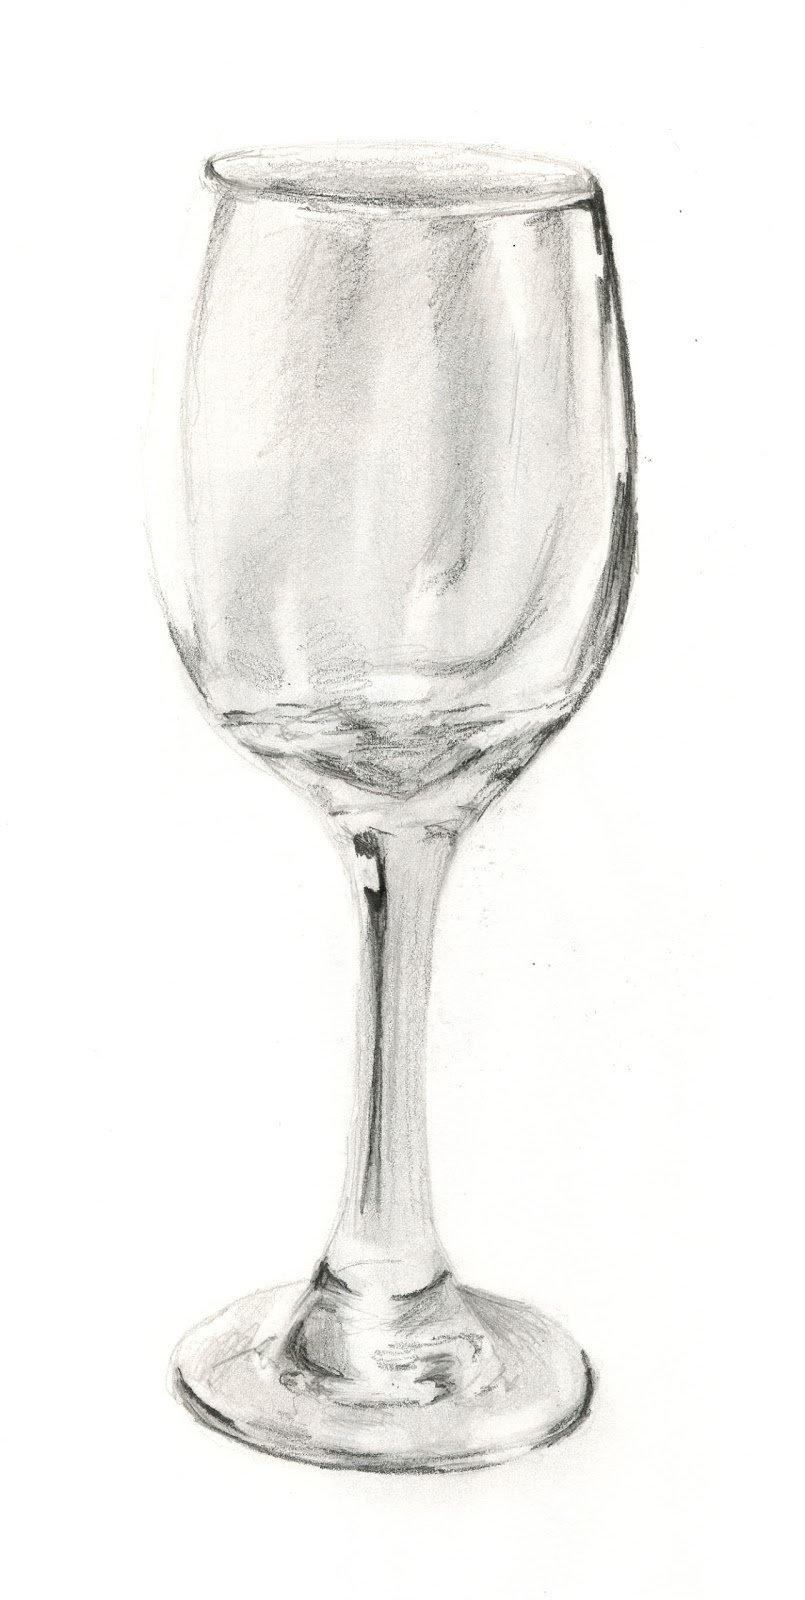 Flom drawn wine glass for How to draw on wine glasses